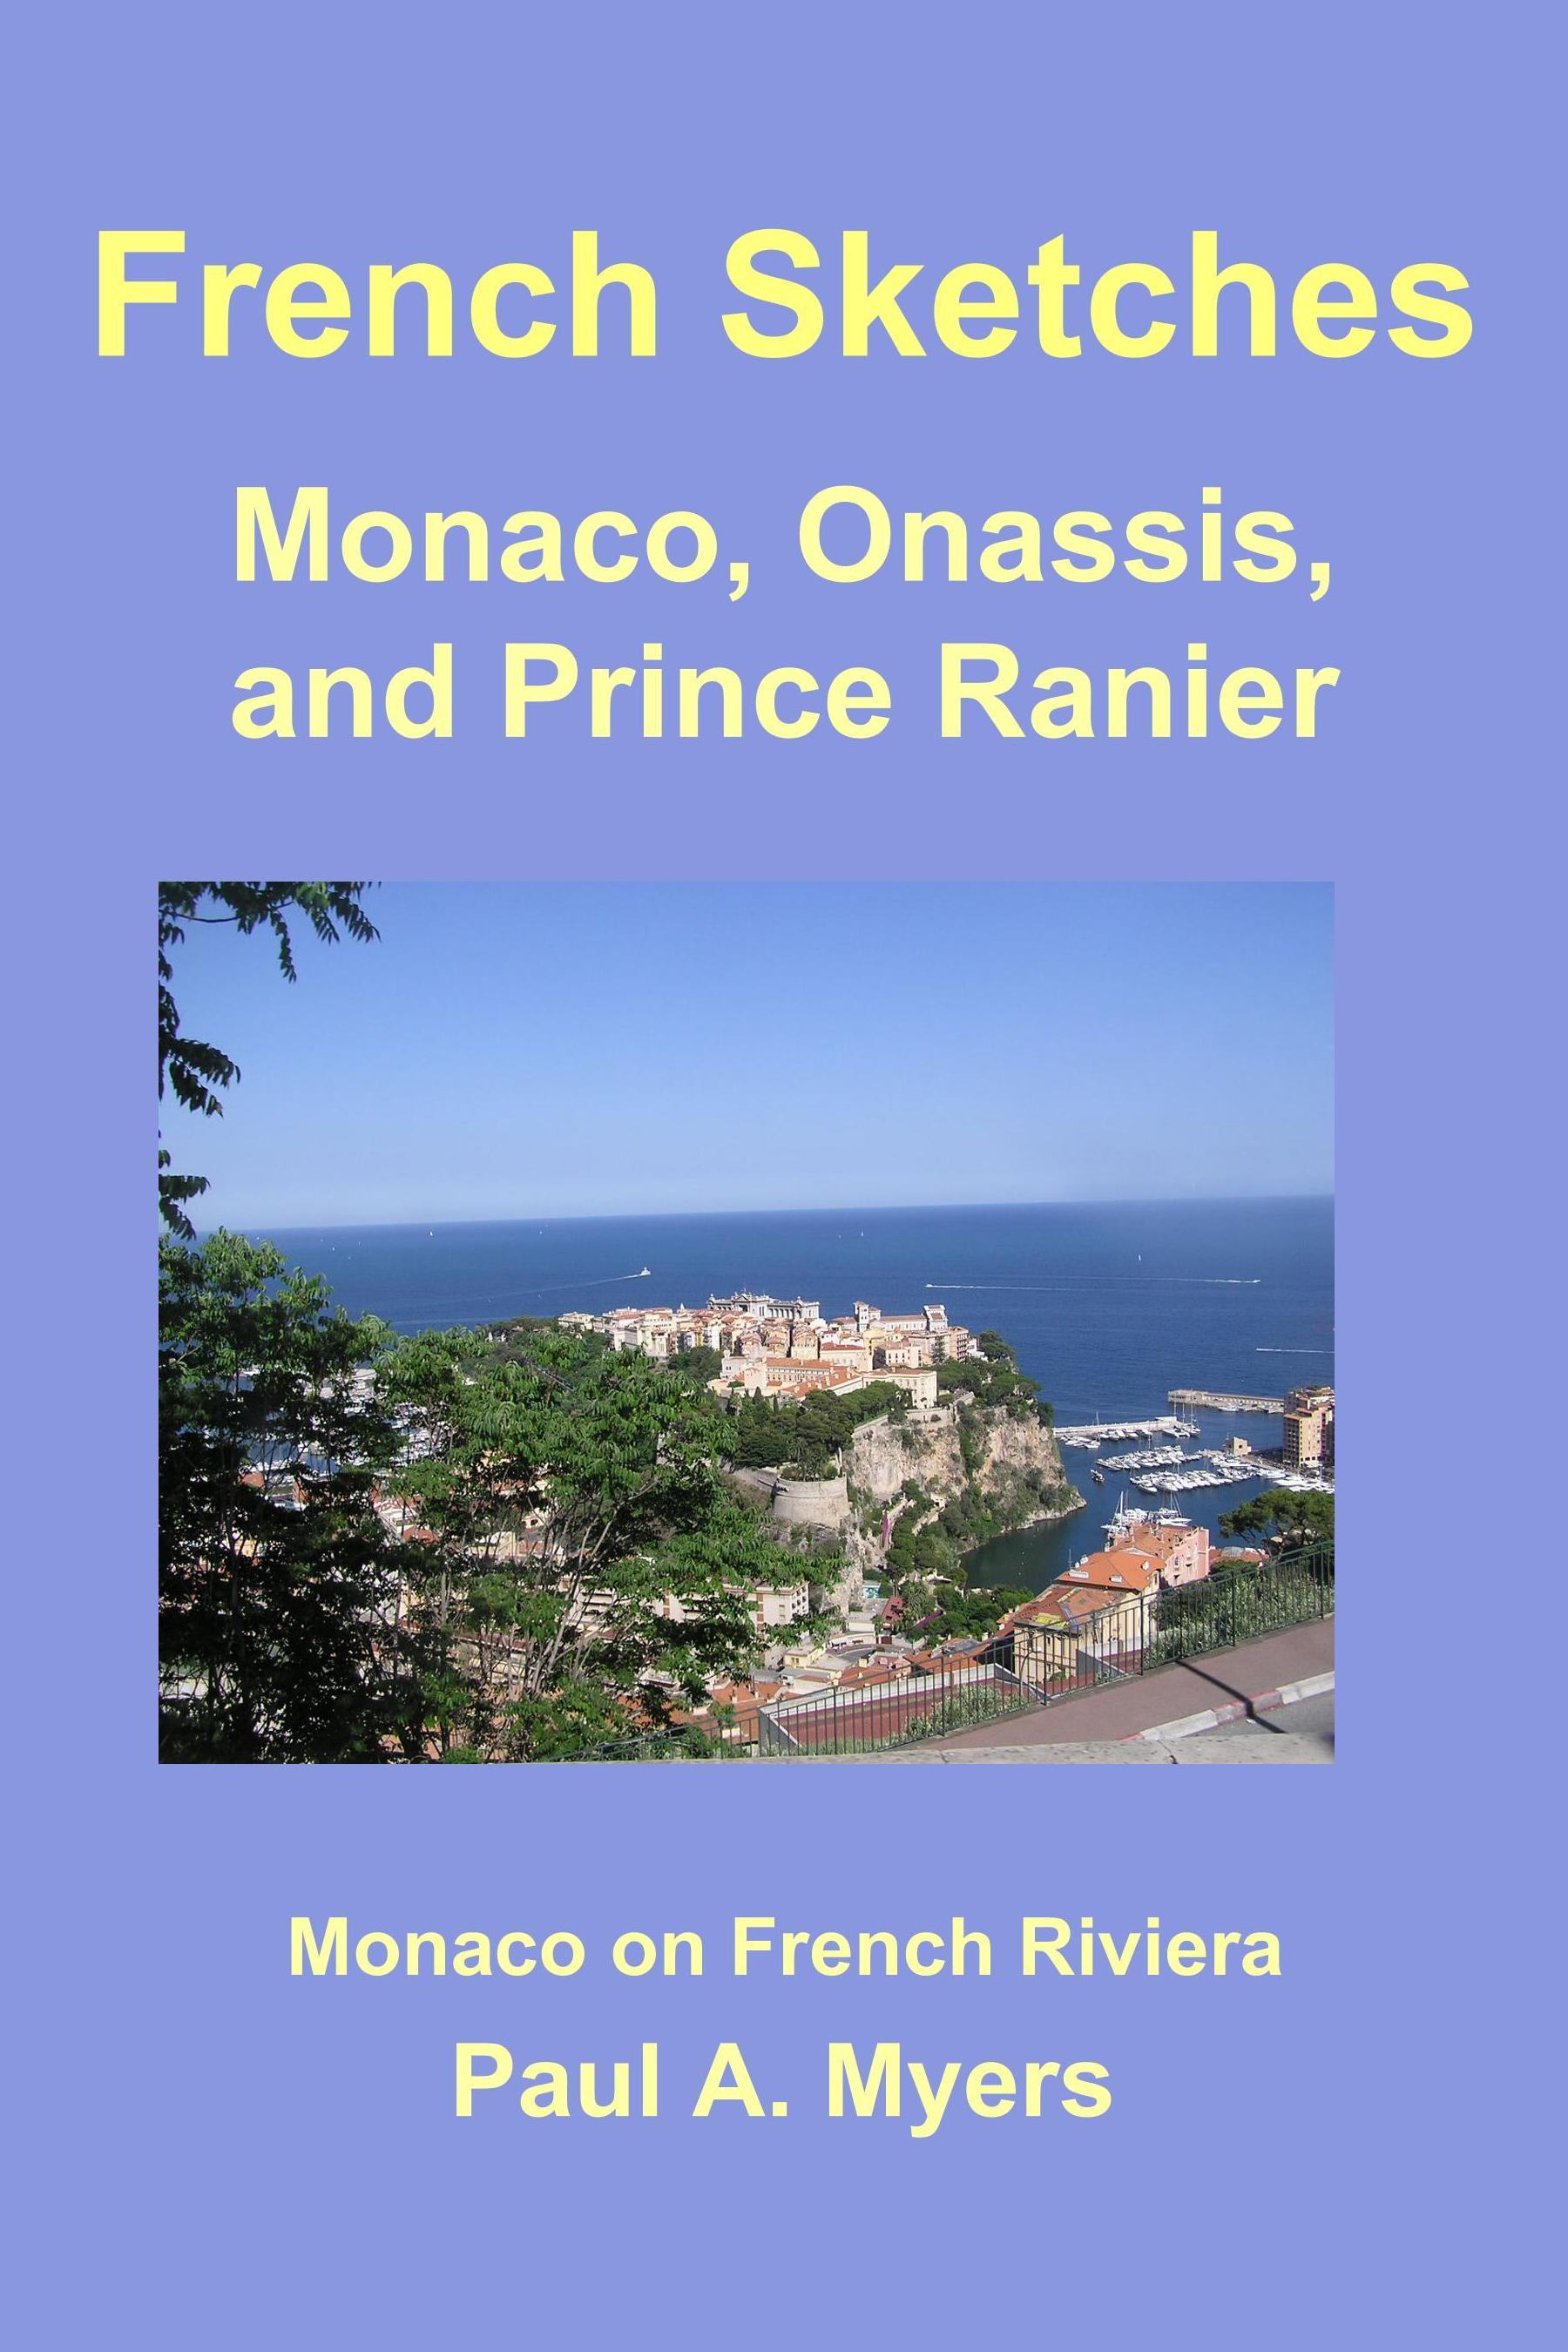 French Sketches: Monaco, Onassis, and Prince Rainier